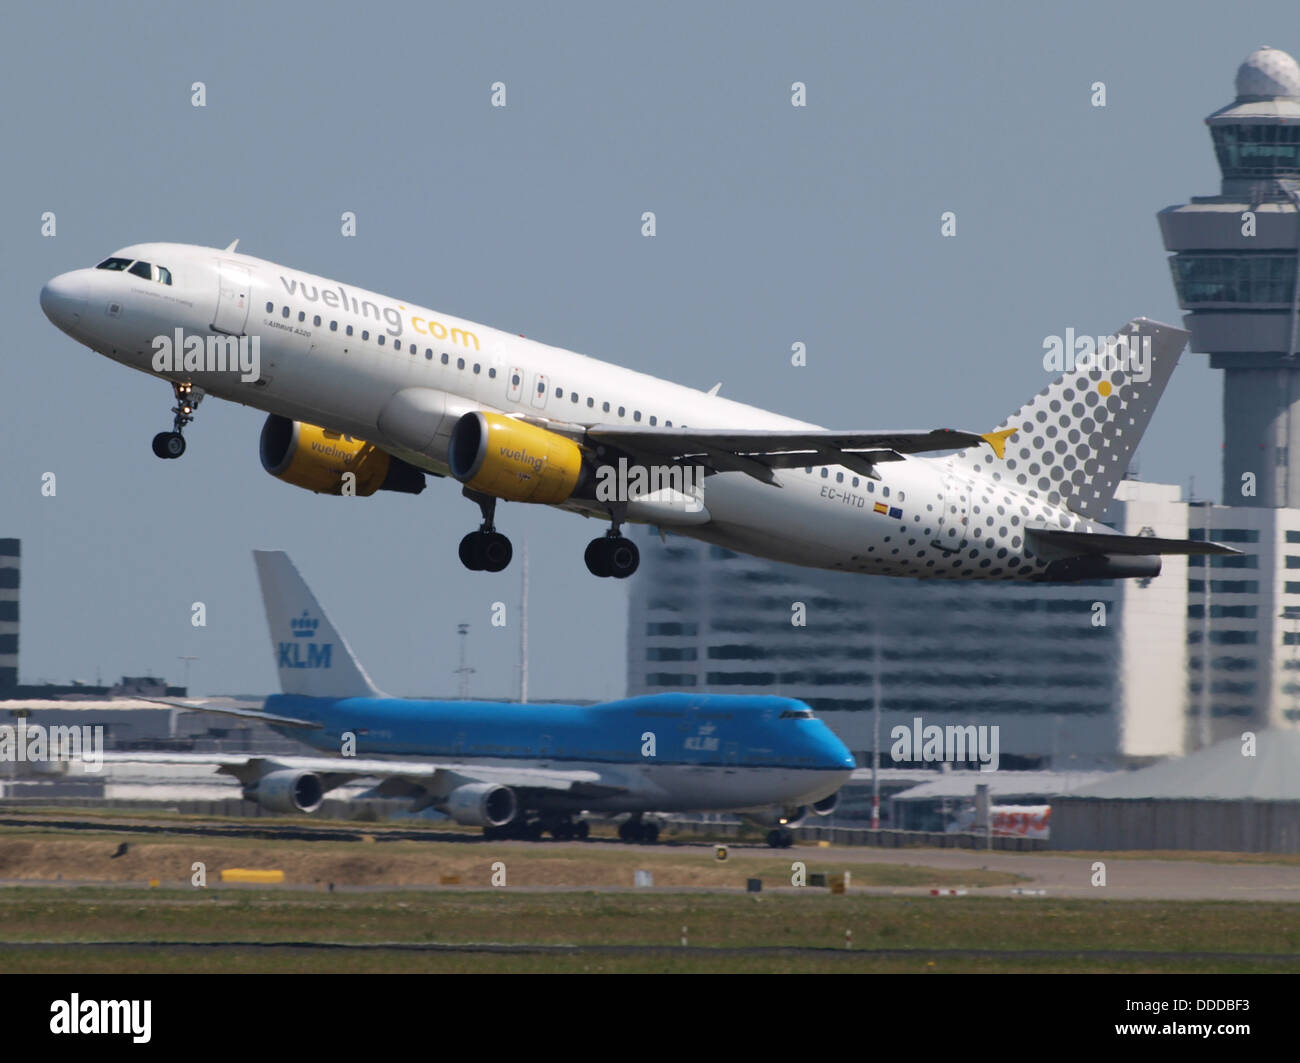 EC-HTD Vueling Airbus A320-214 - cn 1550 take-off 21July2013 pic-001 - Stock Image